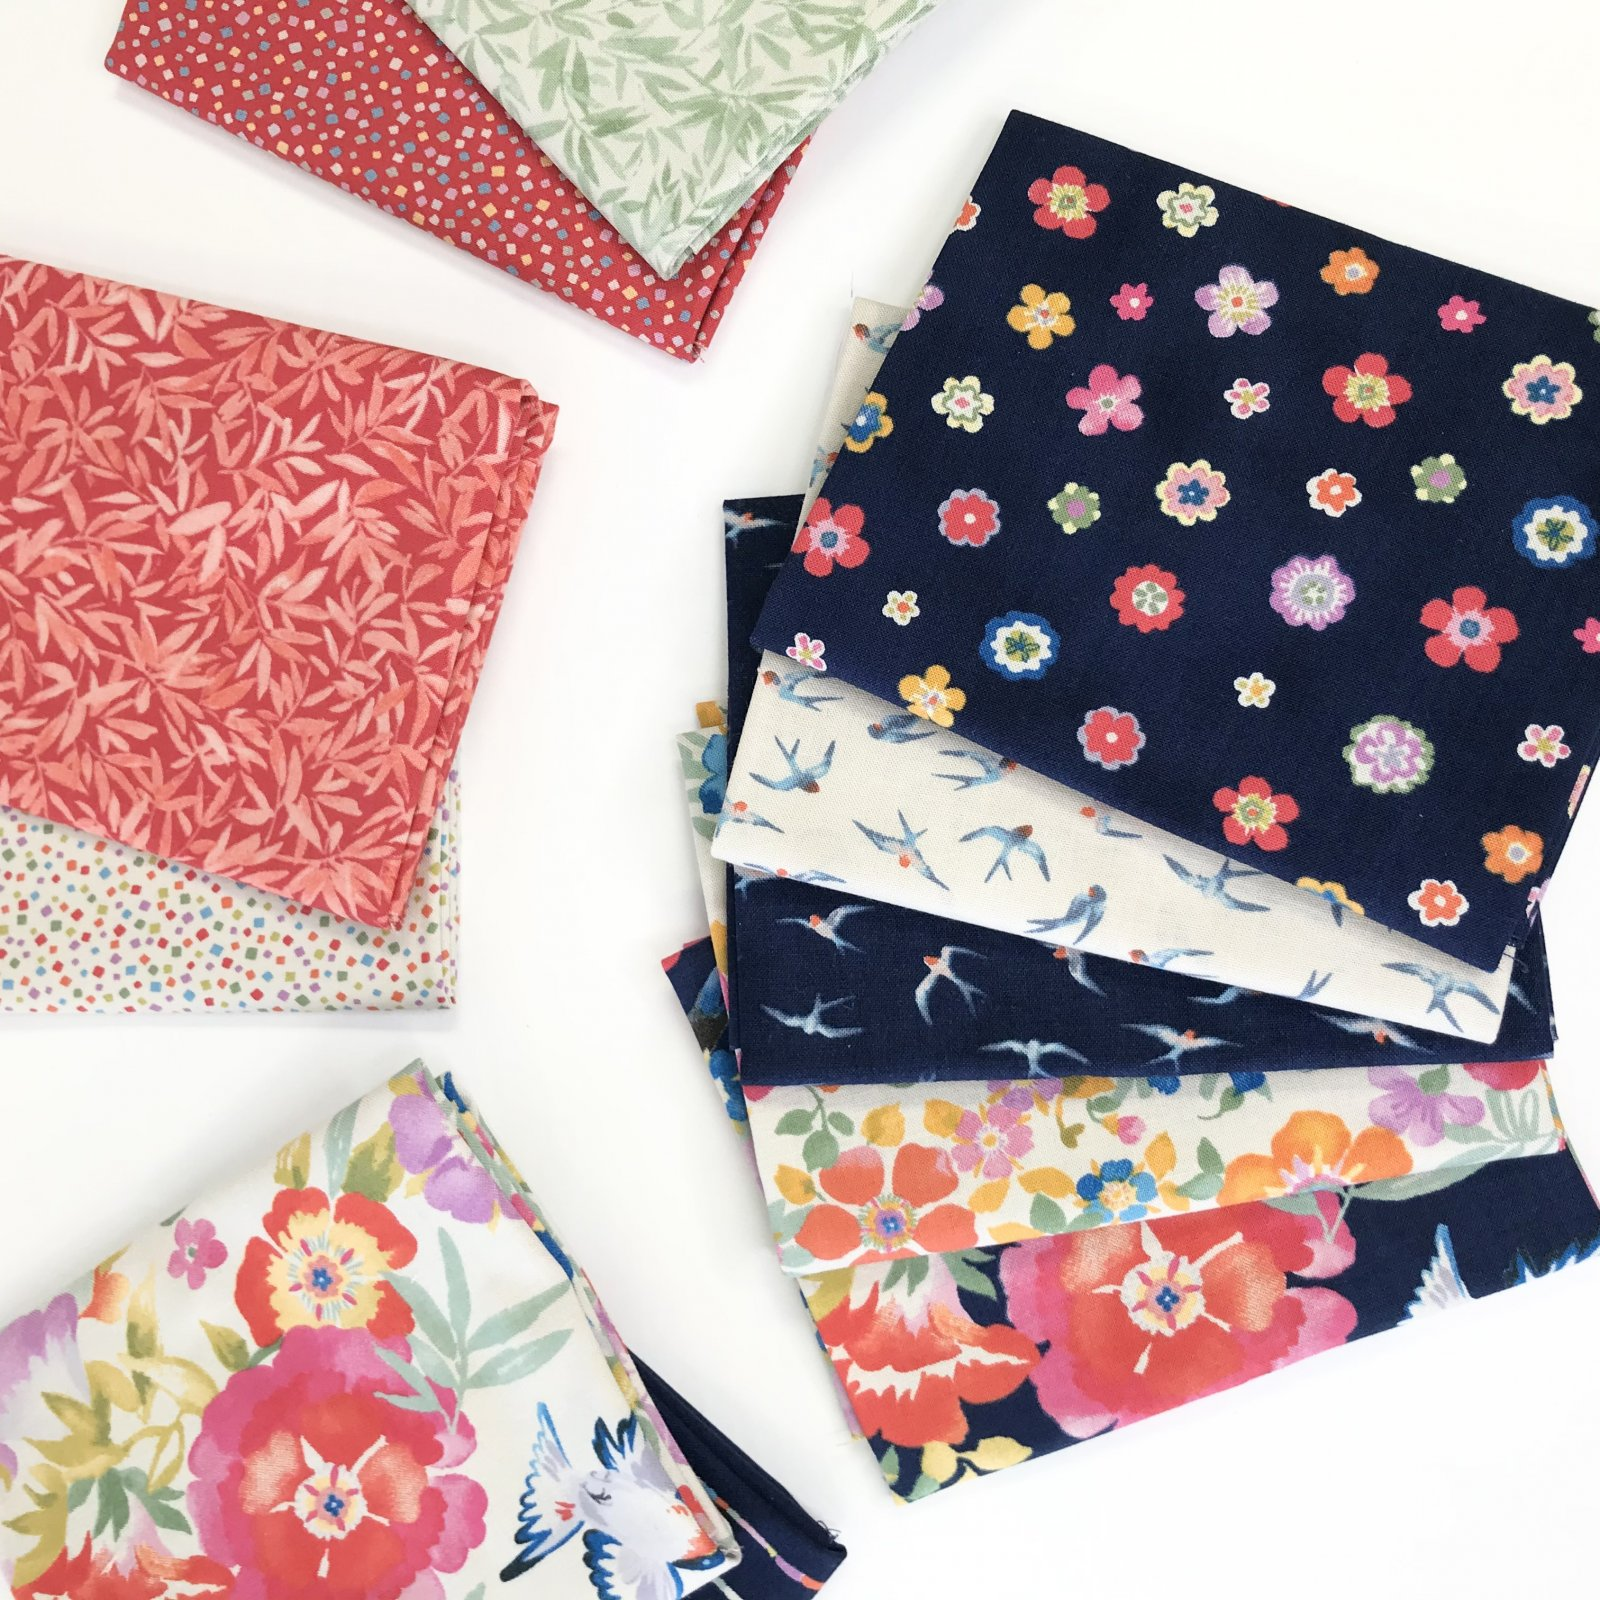 Lulu by Chez Moi for Moda Full Collection Bundles